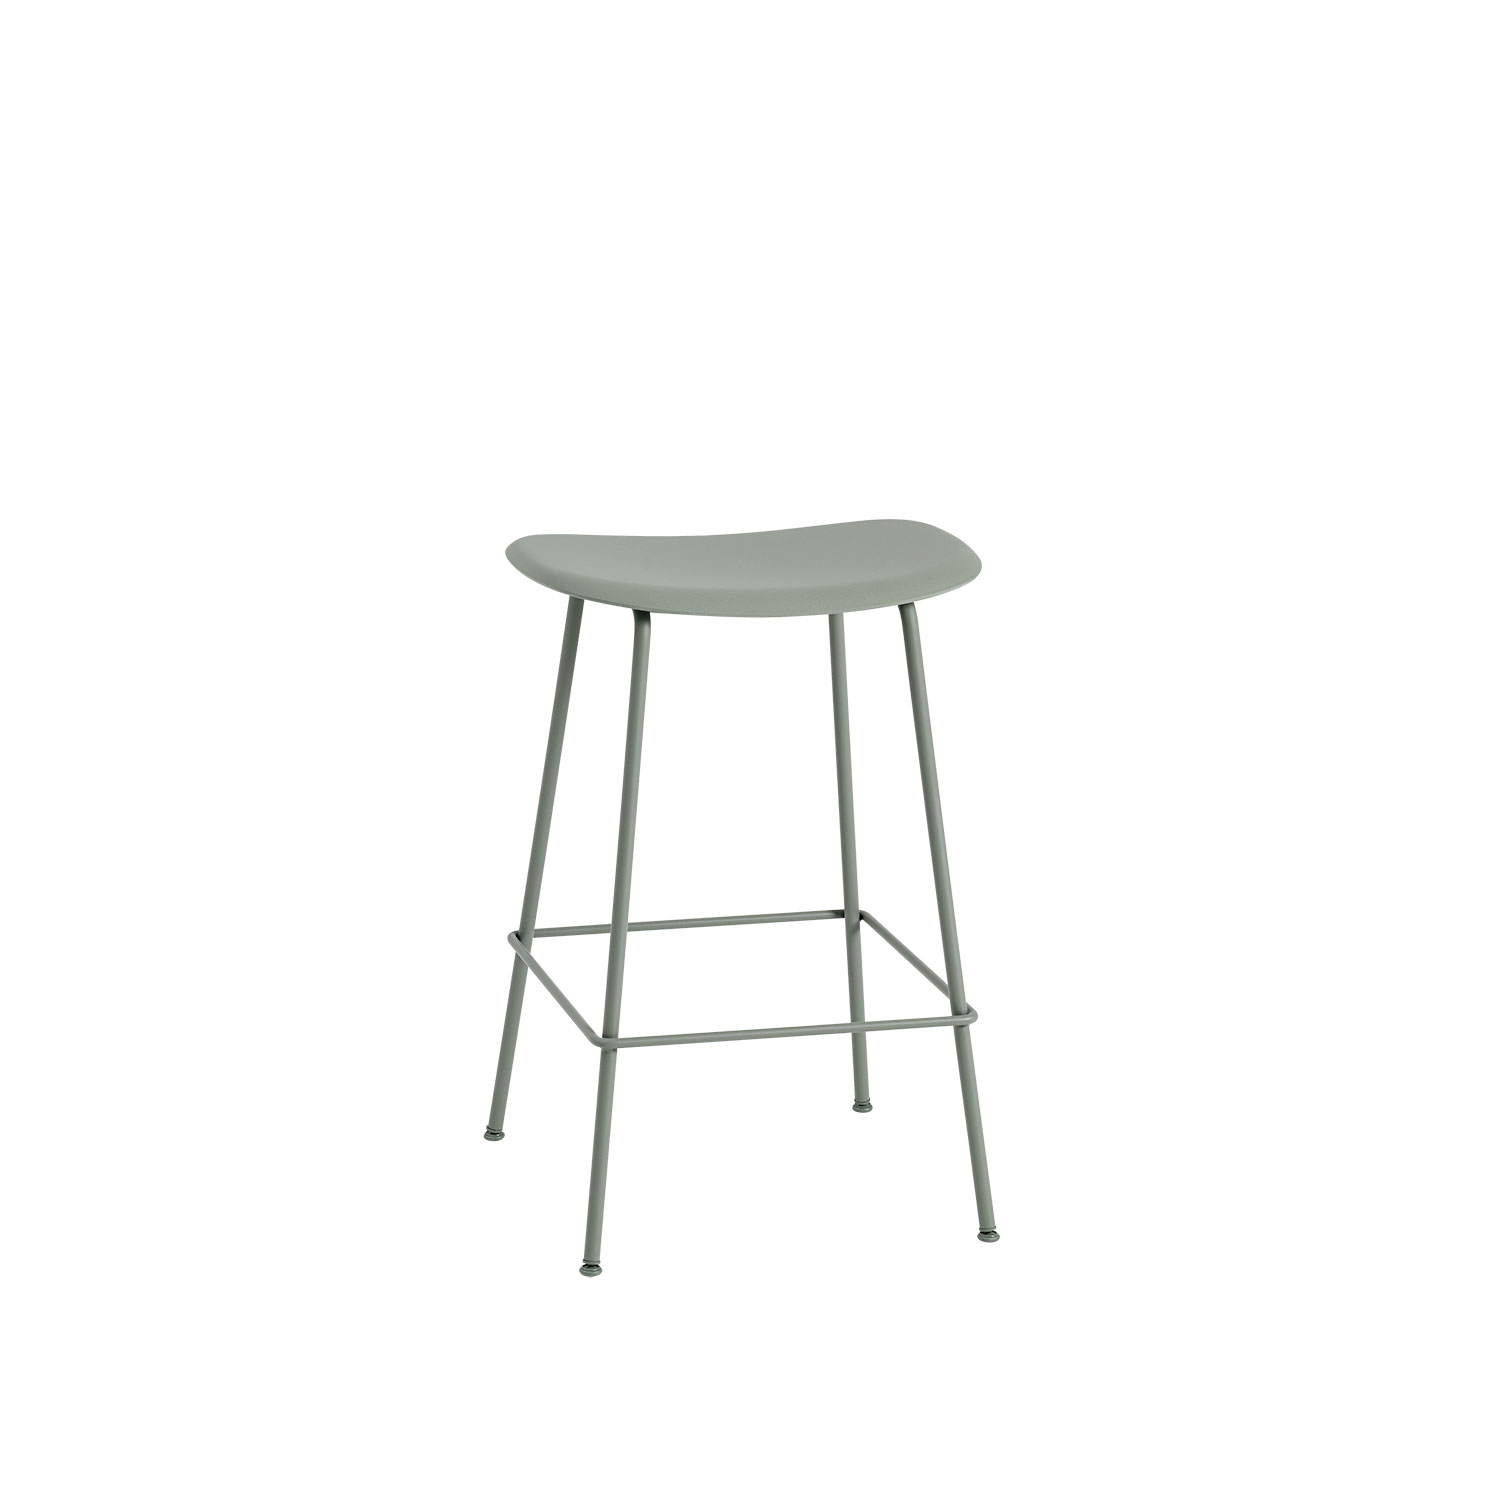 Fiber Tube bar stool, dusty green